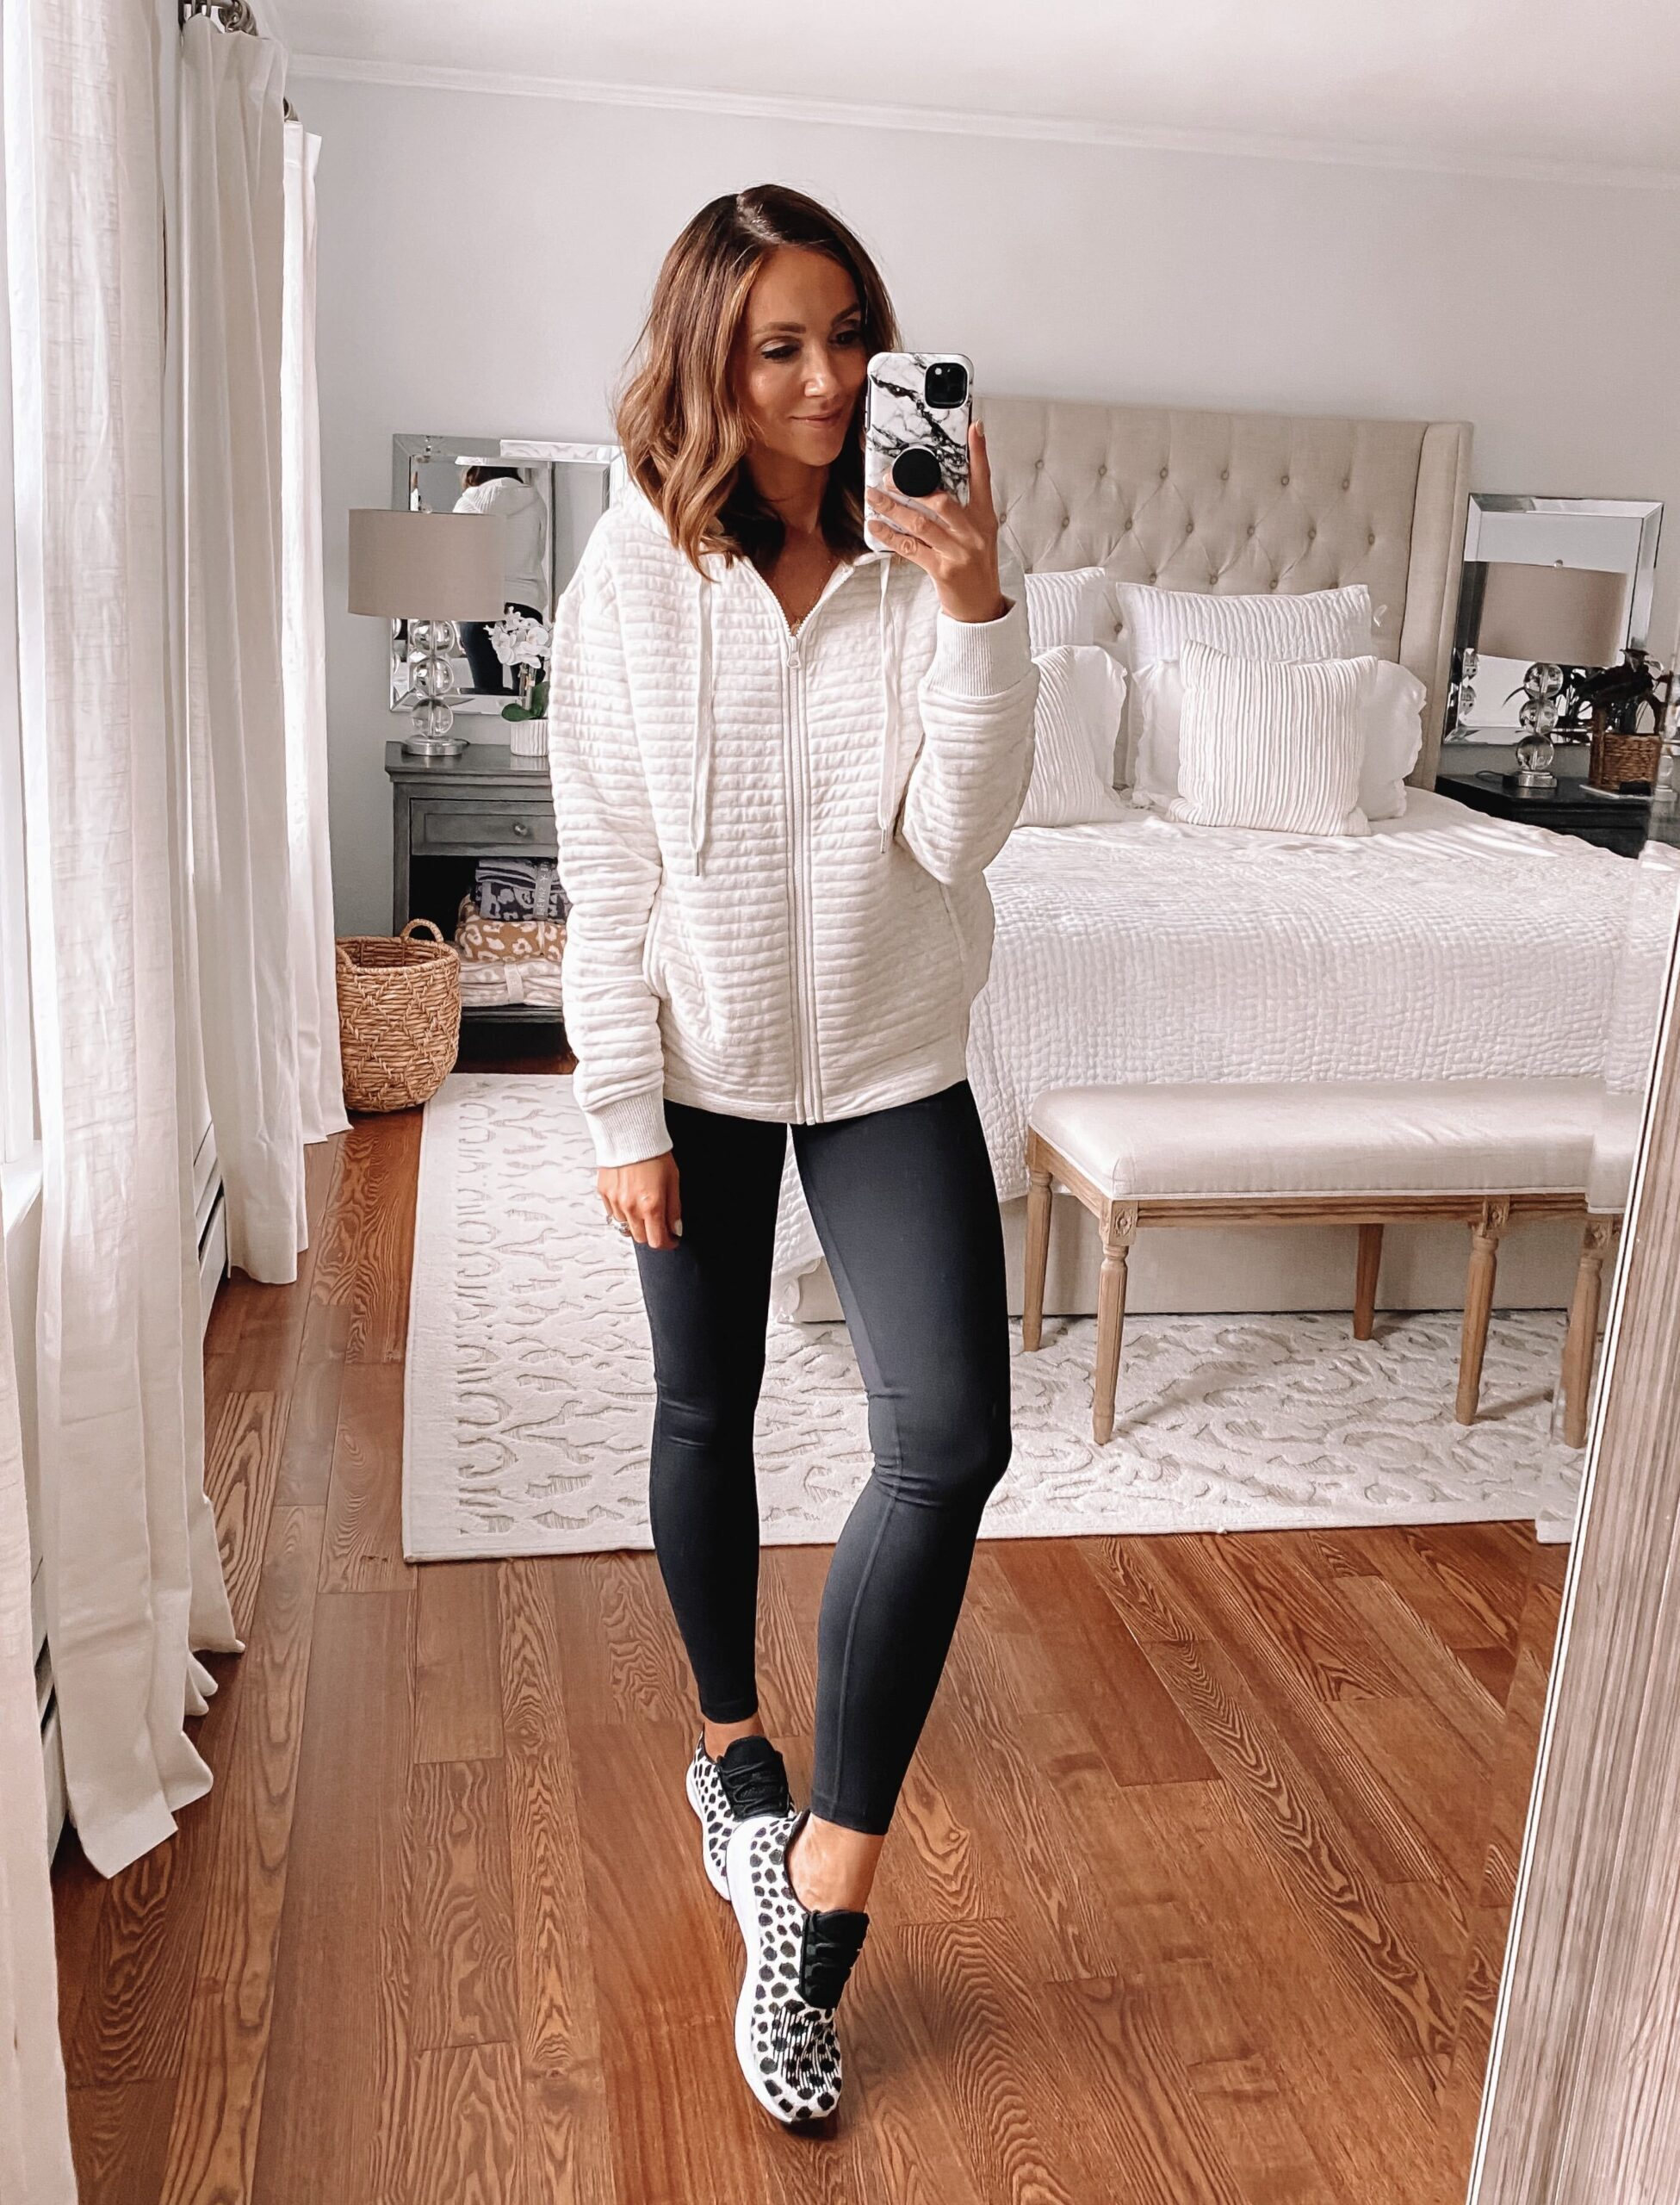 Zella leggings, casual outfit idea